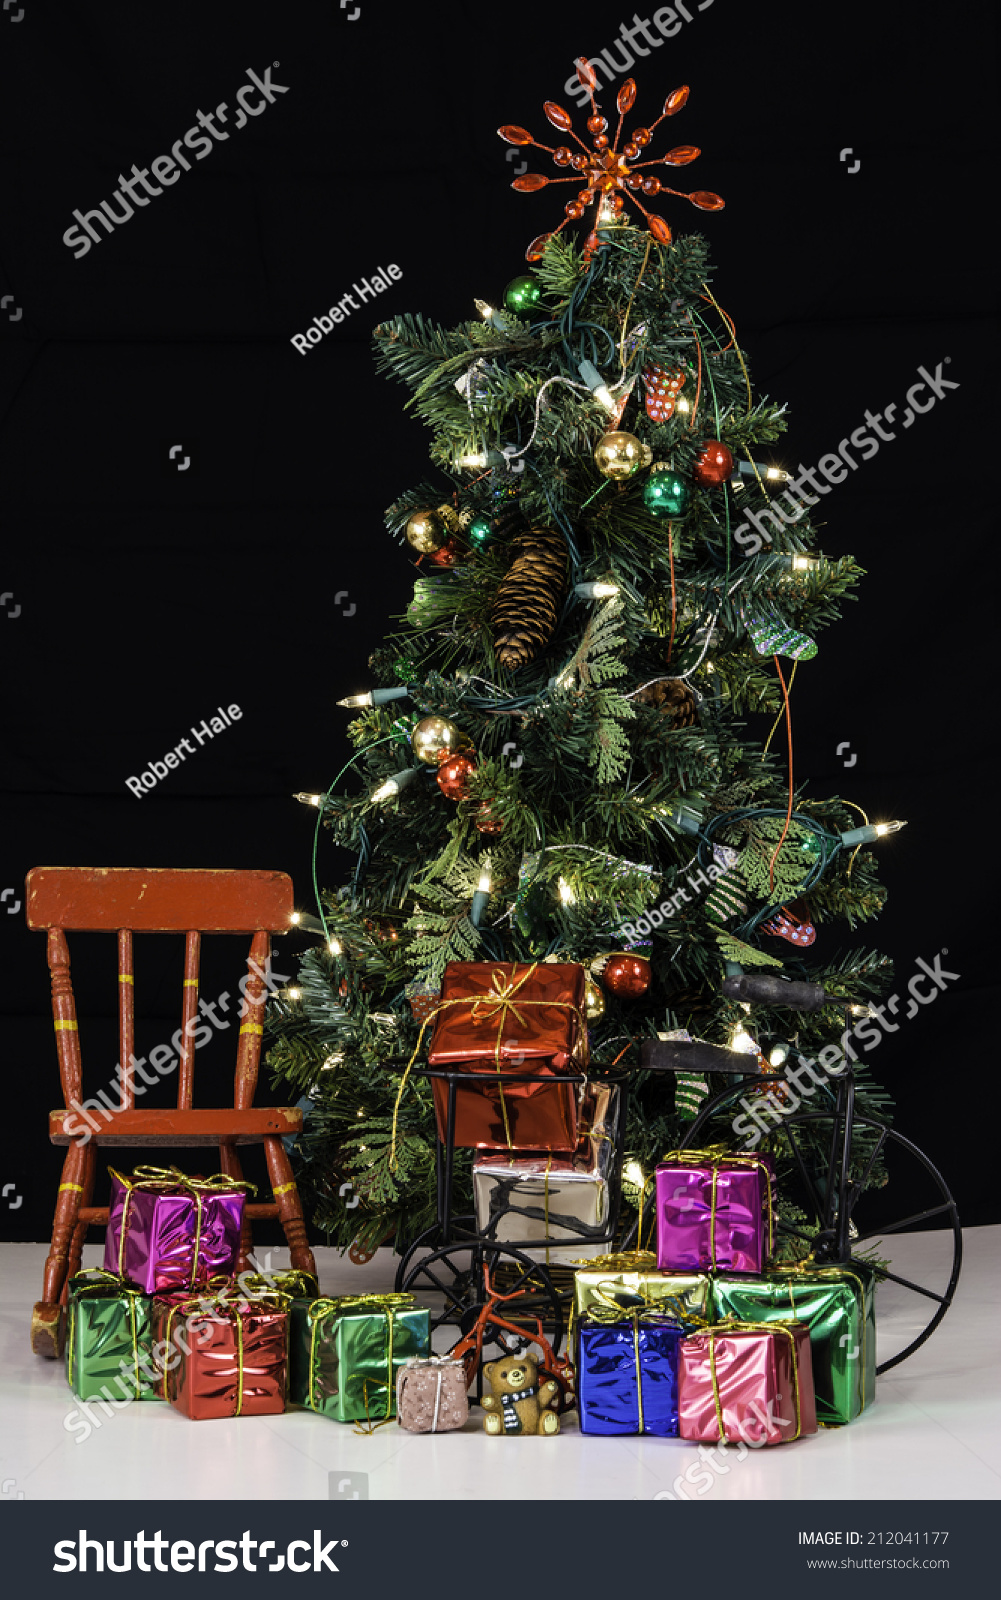 Still life of decorated christmas tree with lights next to